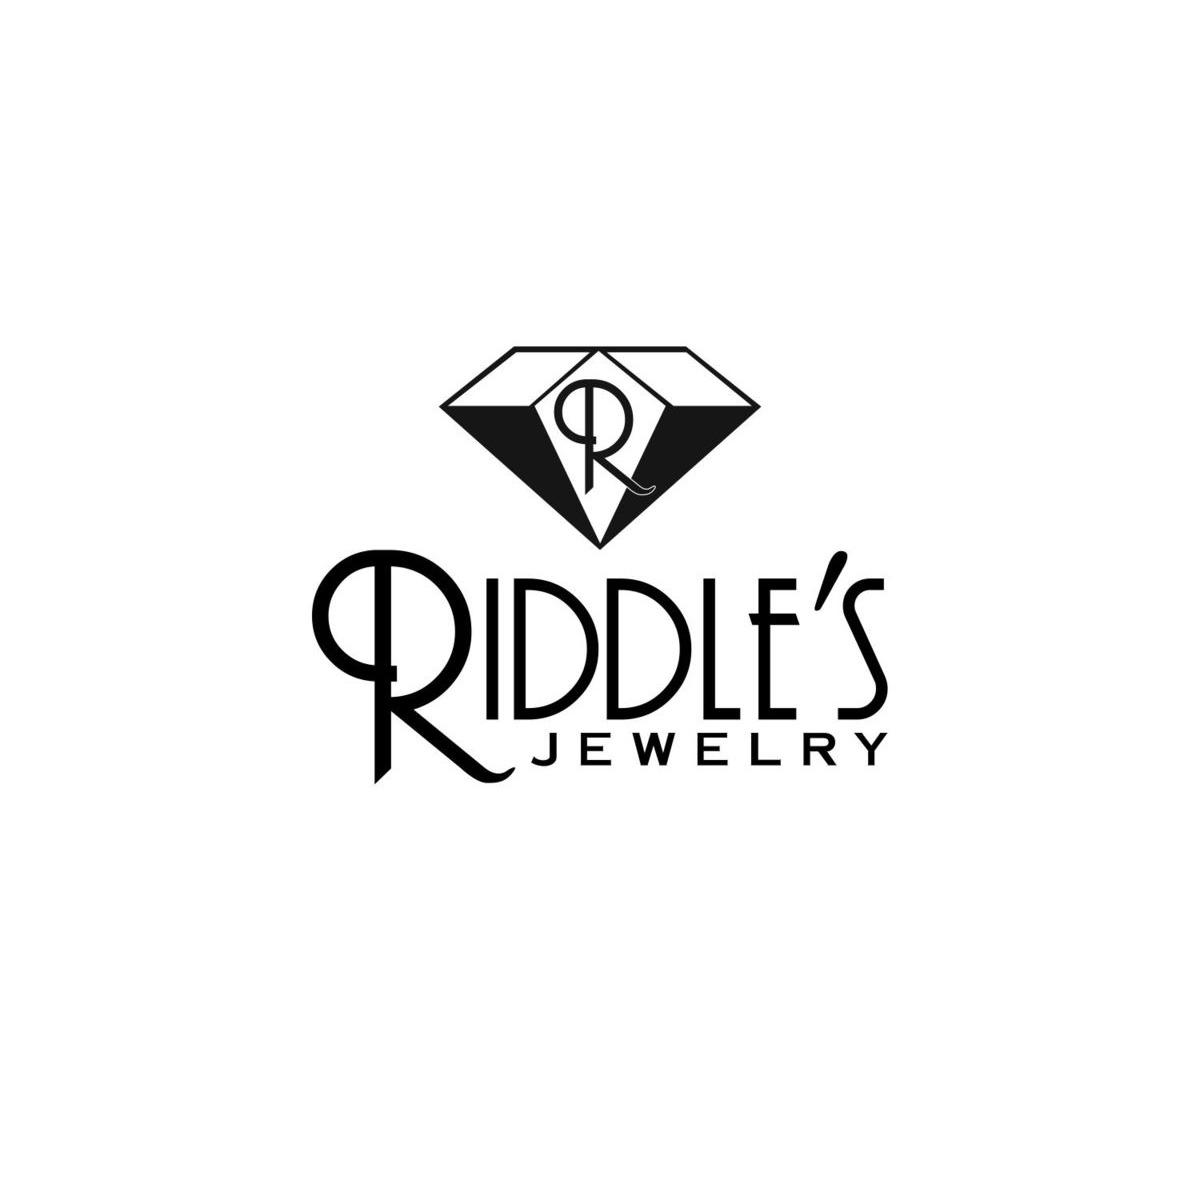 Riddle's Jewelry image 1